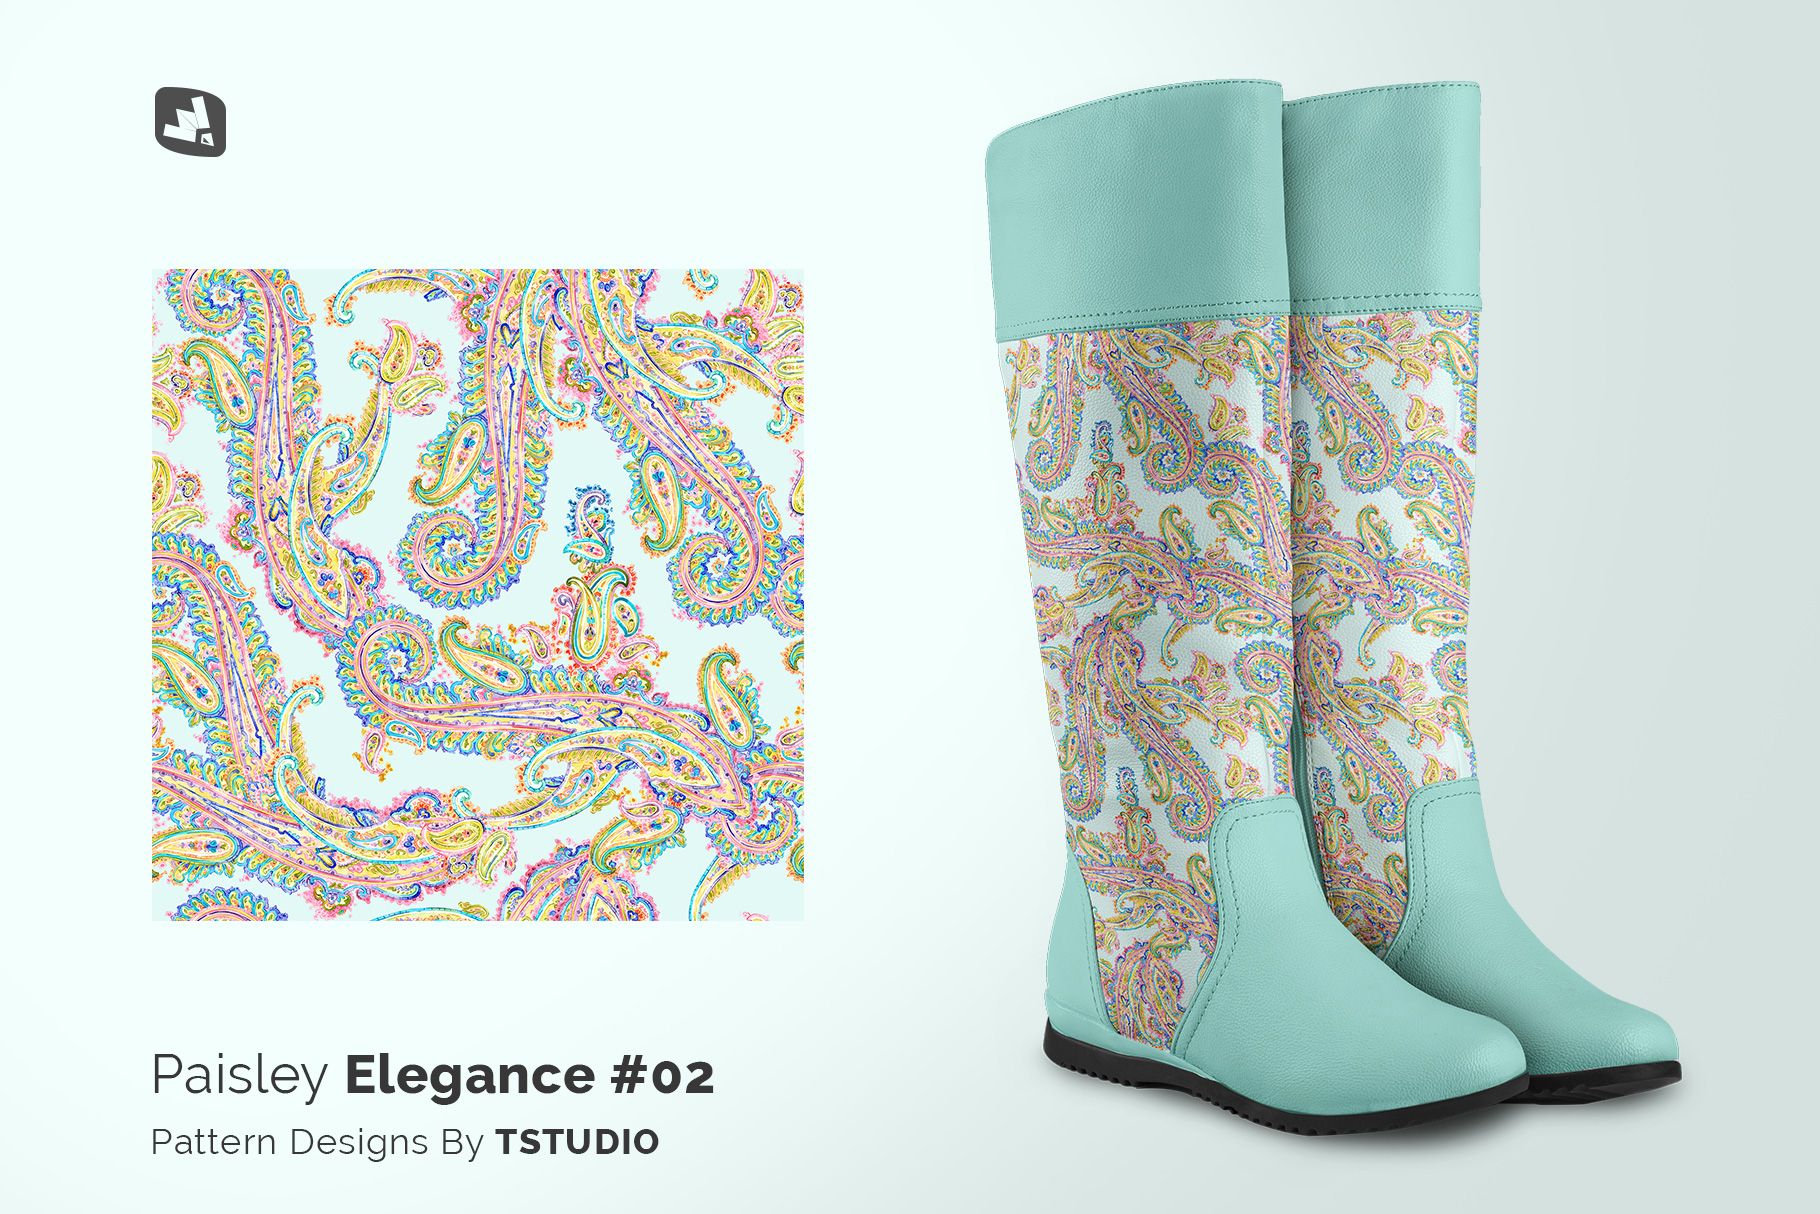 designer's credit of the extended calf leather boots mockup